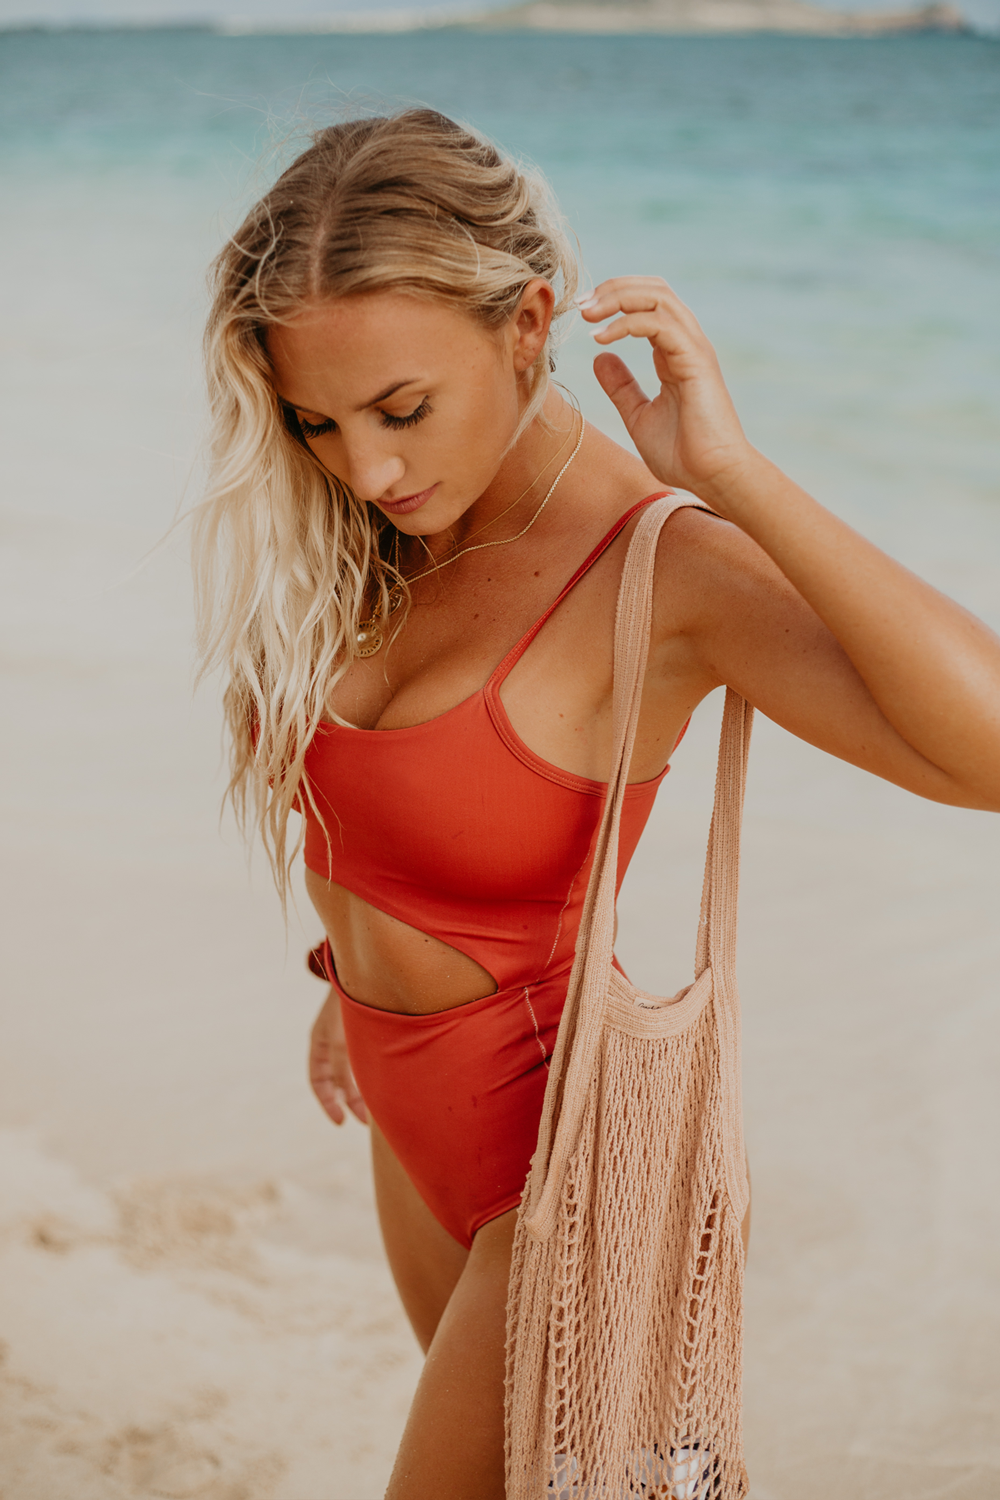 Wave Babe Swimwear Maya One Piece Minimal Bikinis Monokinis Spice Rust Red Cut Out Quality Durable Fabric 2019 Styles New Gorgeous Soft Pretty